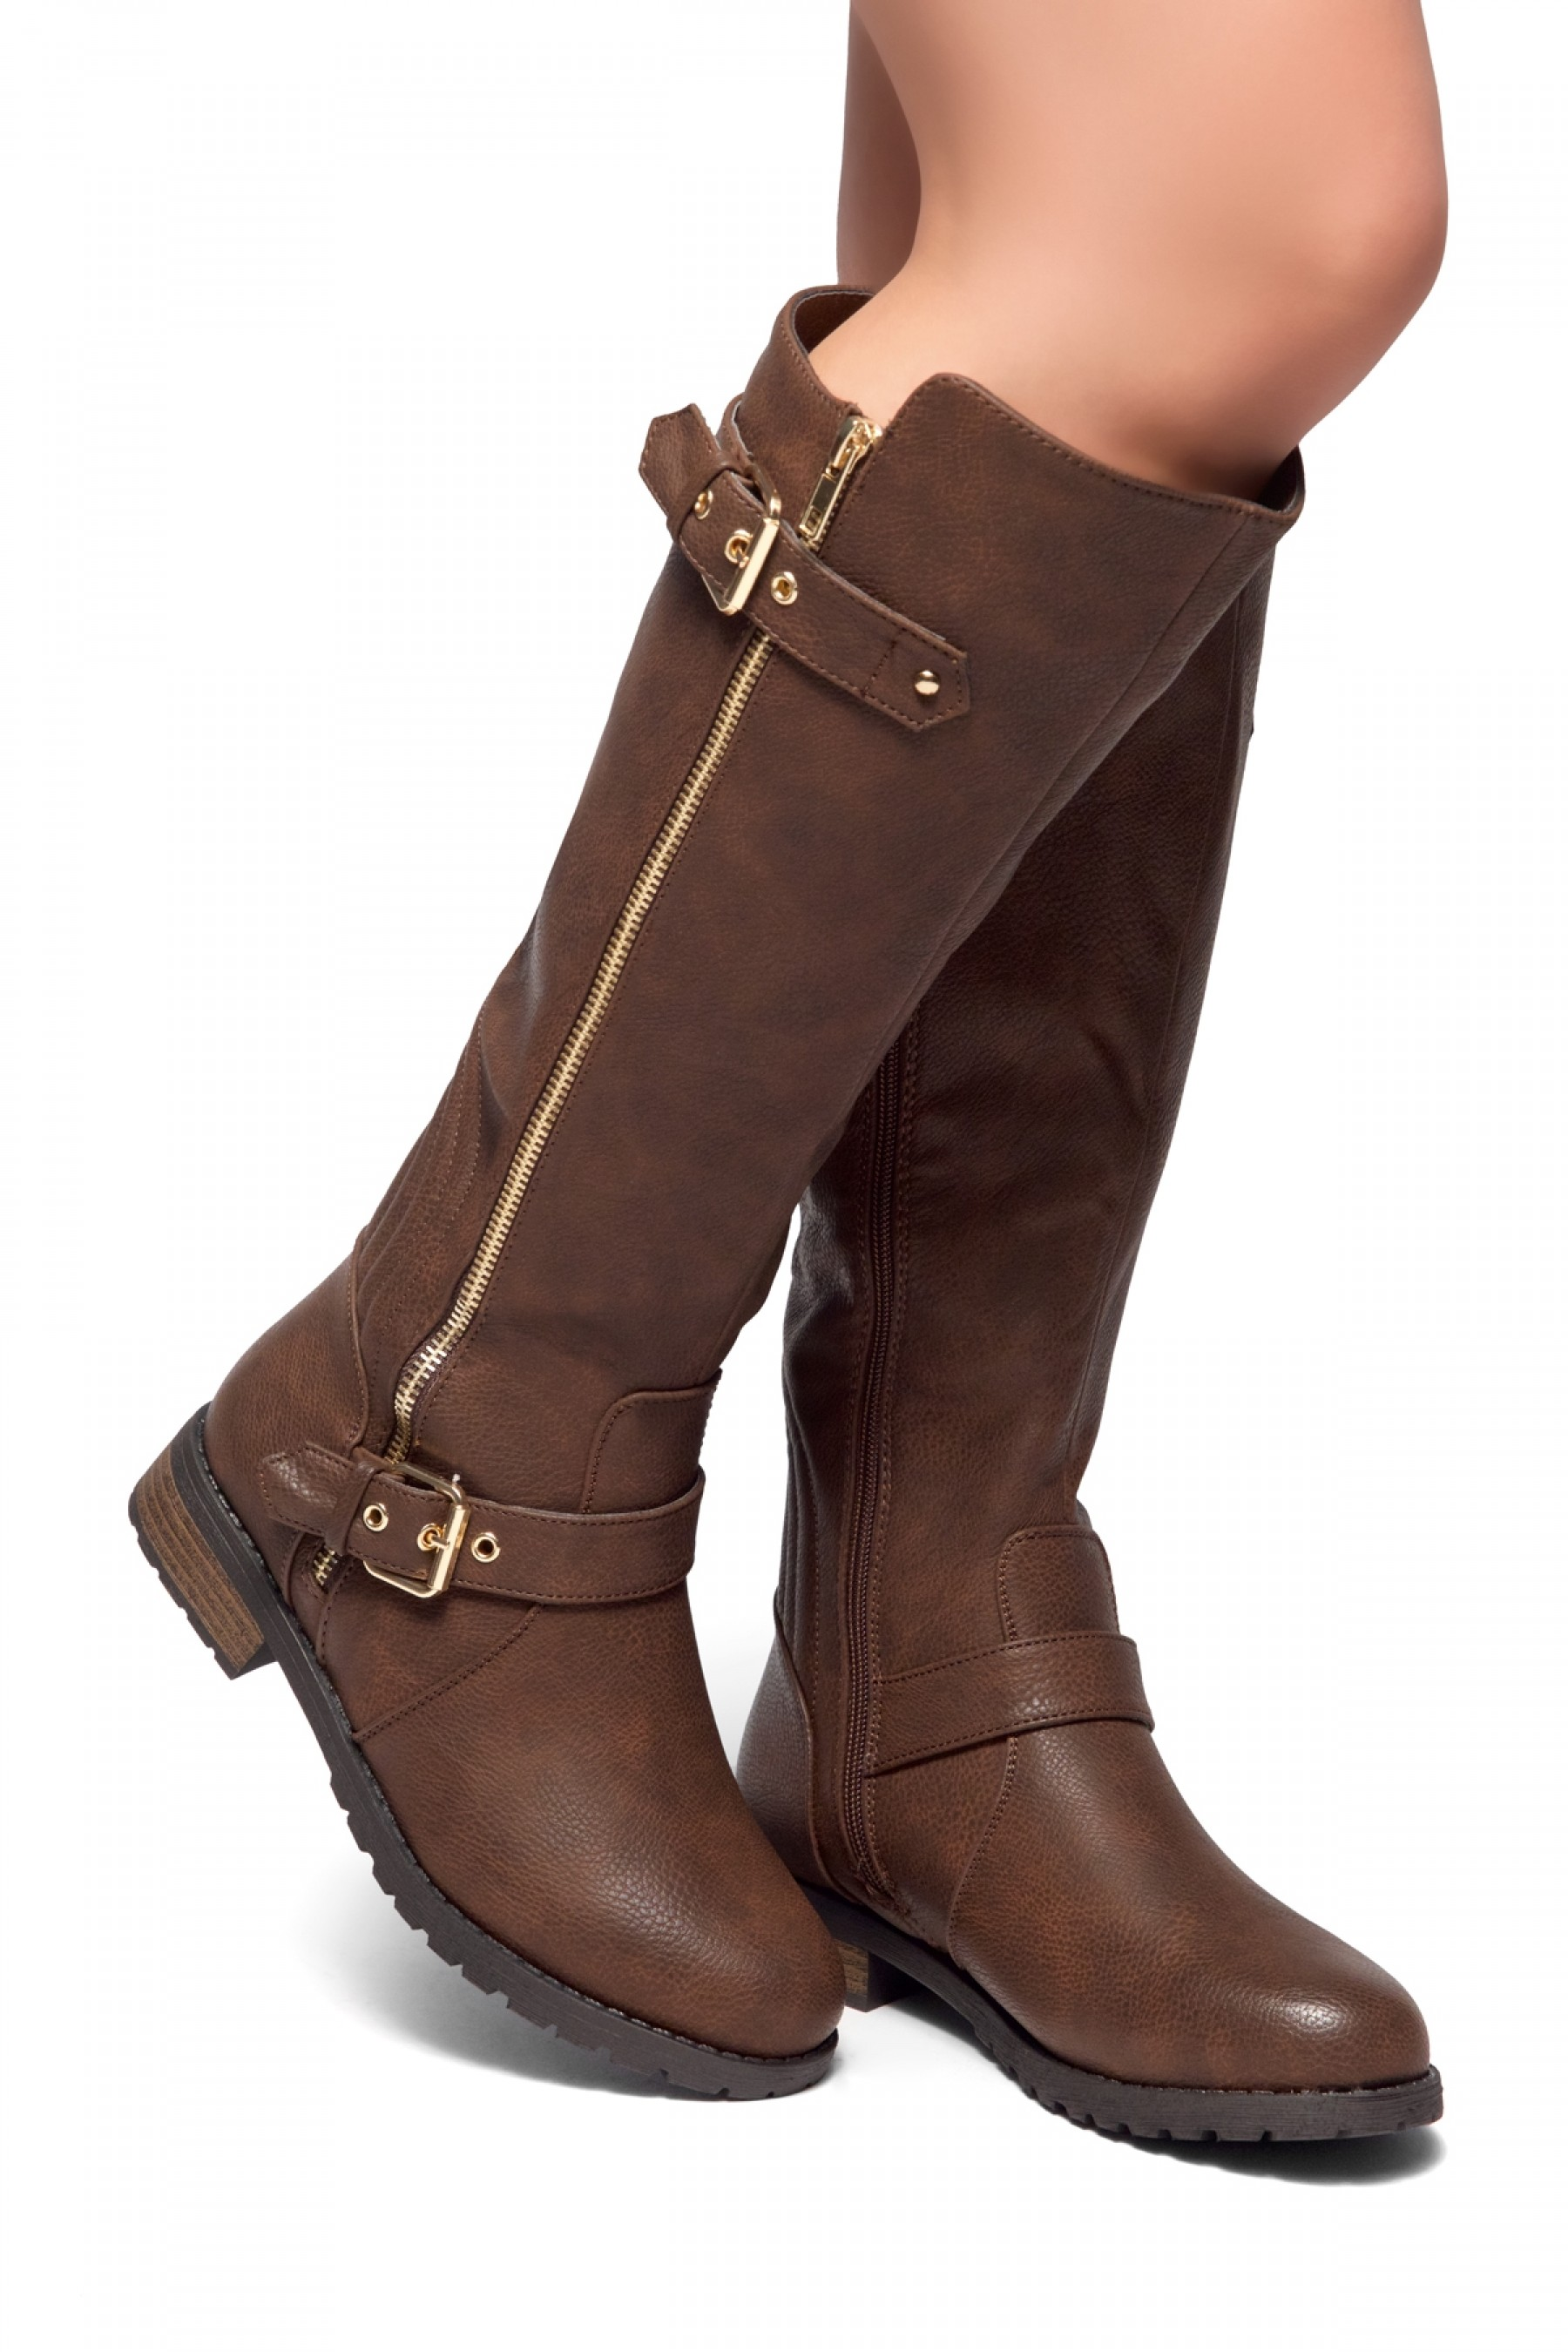 BROWN BOOTS herstyle city runaway-zipper trim, buckle detail riding knee high boots ( brown) TPGYIXI